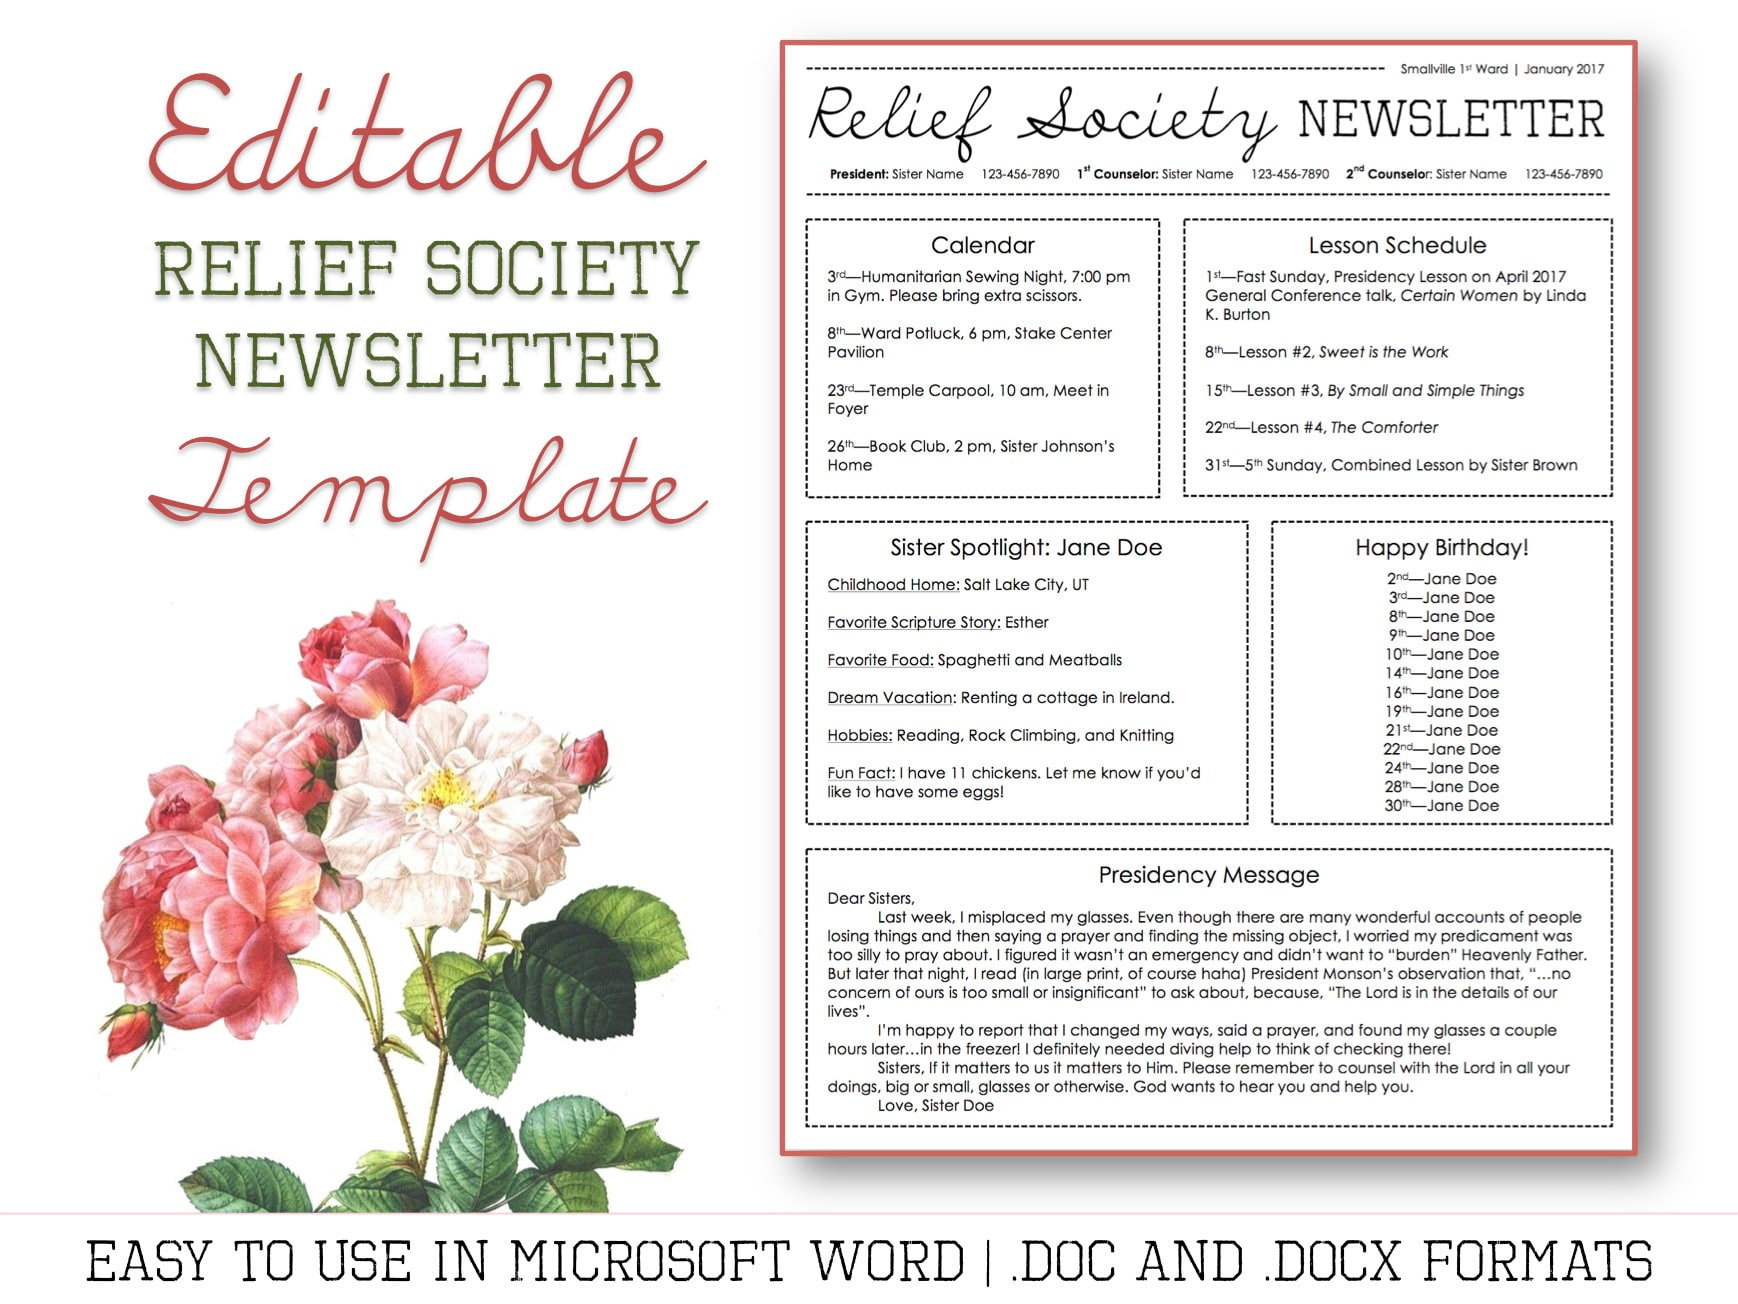 il_fullxfull.1306608807_nu97 Lds Relief Society Newsletter Template on women's newsletter template, lds agenda template, clip art newsletter template, relief society conducting template, lds primary conducting sheet, e-newsletter template, lds bulletin templates, lds reading schedule, lds sacrament prayer text, black and white newsletter template, relief society agenda template, creating a newsletter template, monthly parent newsletter template, newsletter format template, lds church program template, lds sacrament meeting program covers, june newsletter template, lds calendar template, lds church bulletin,